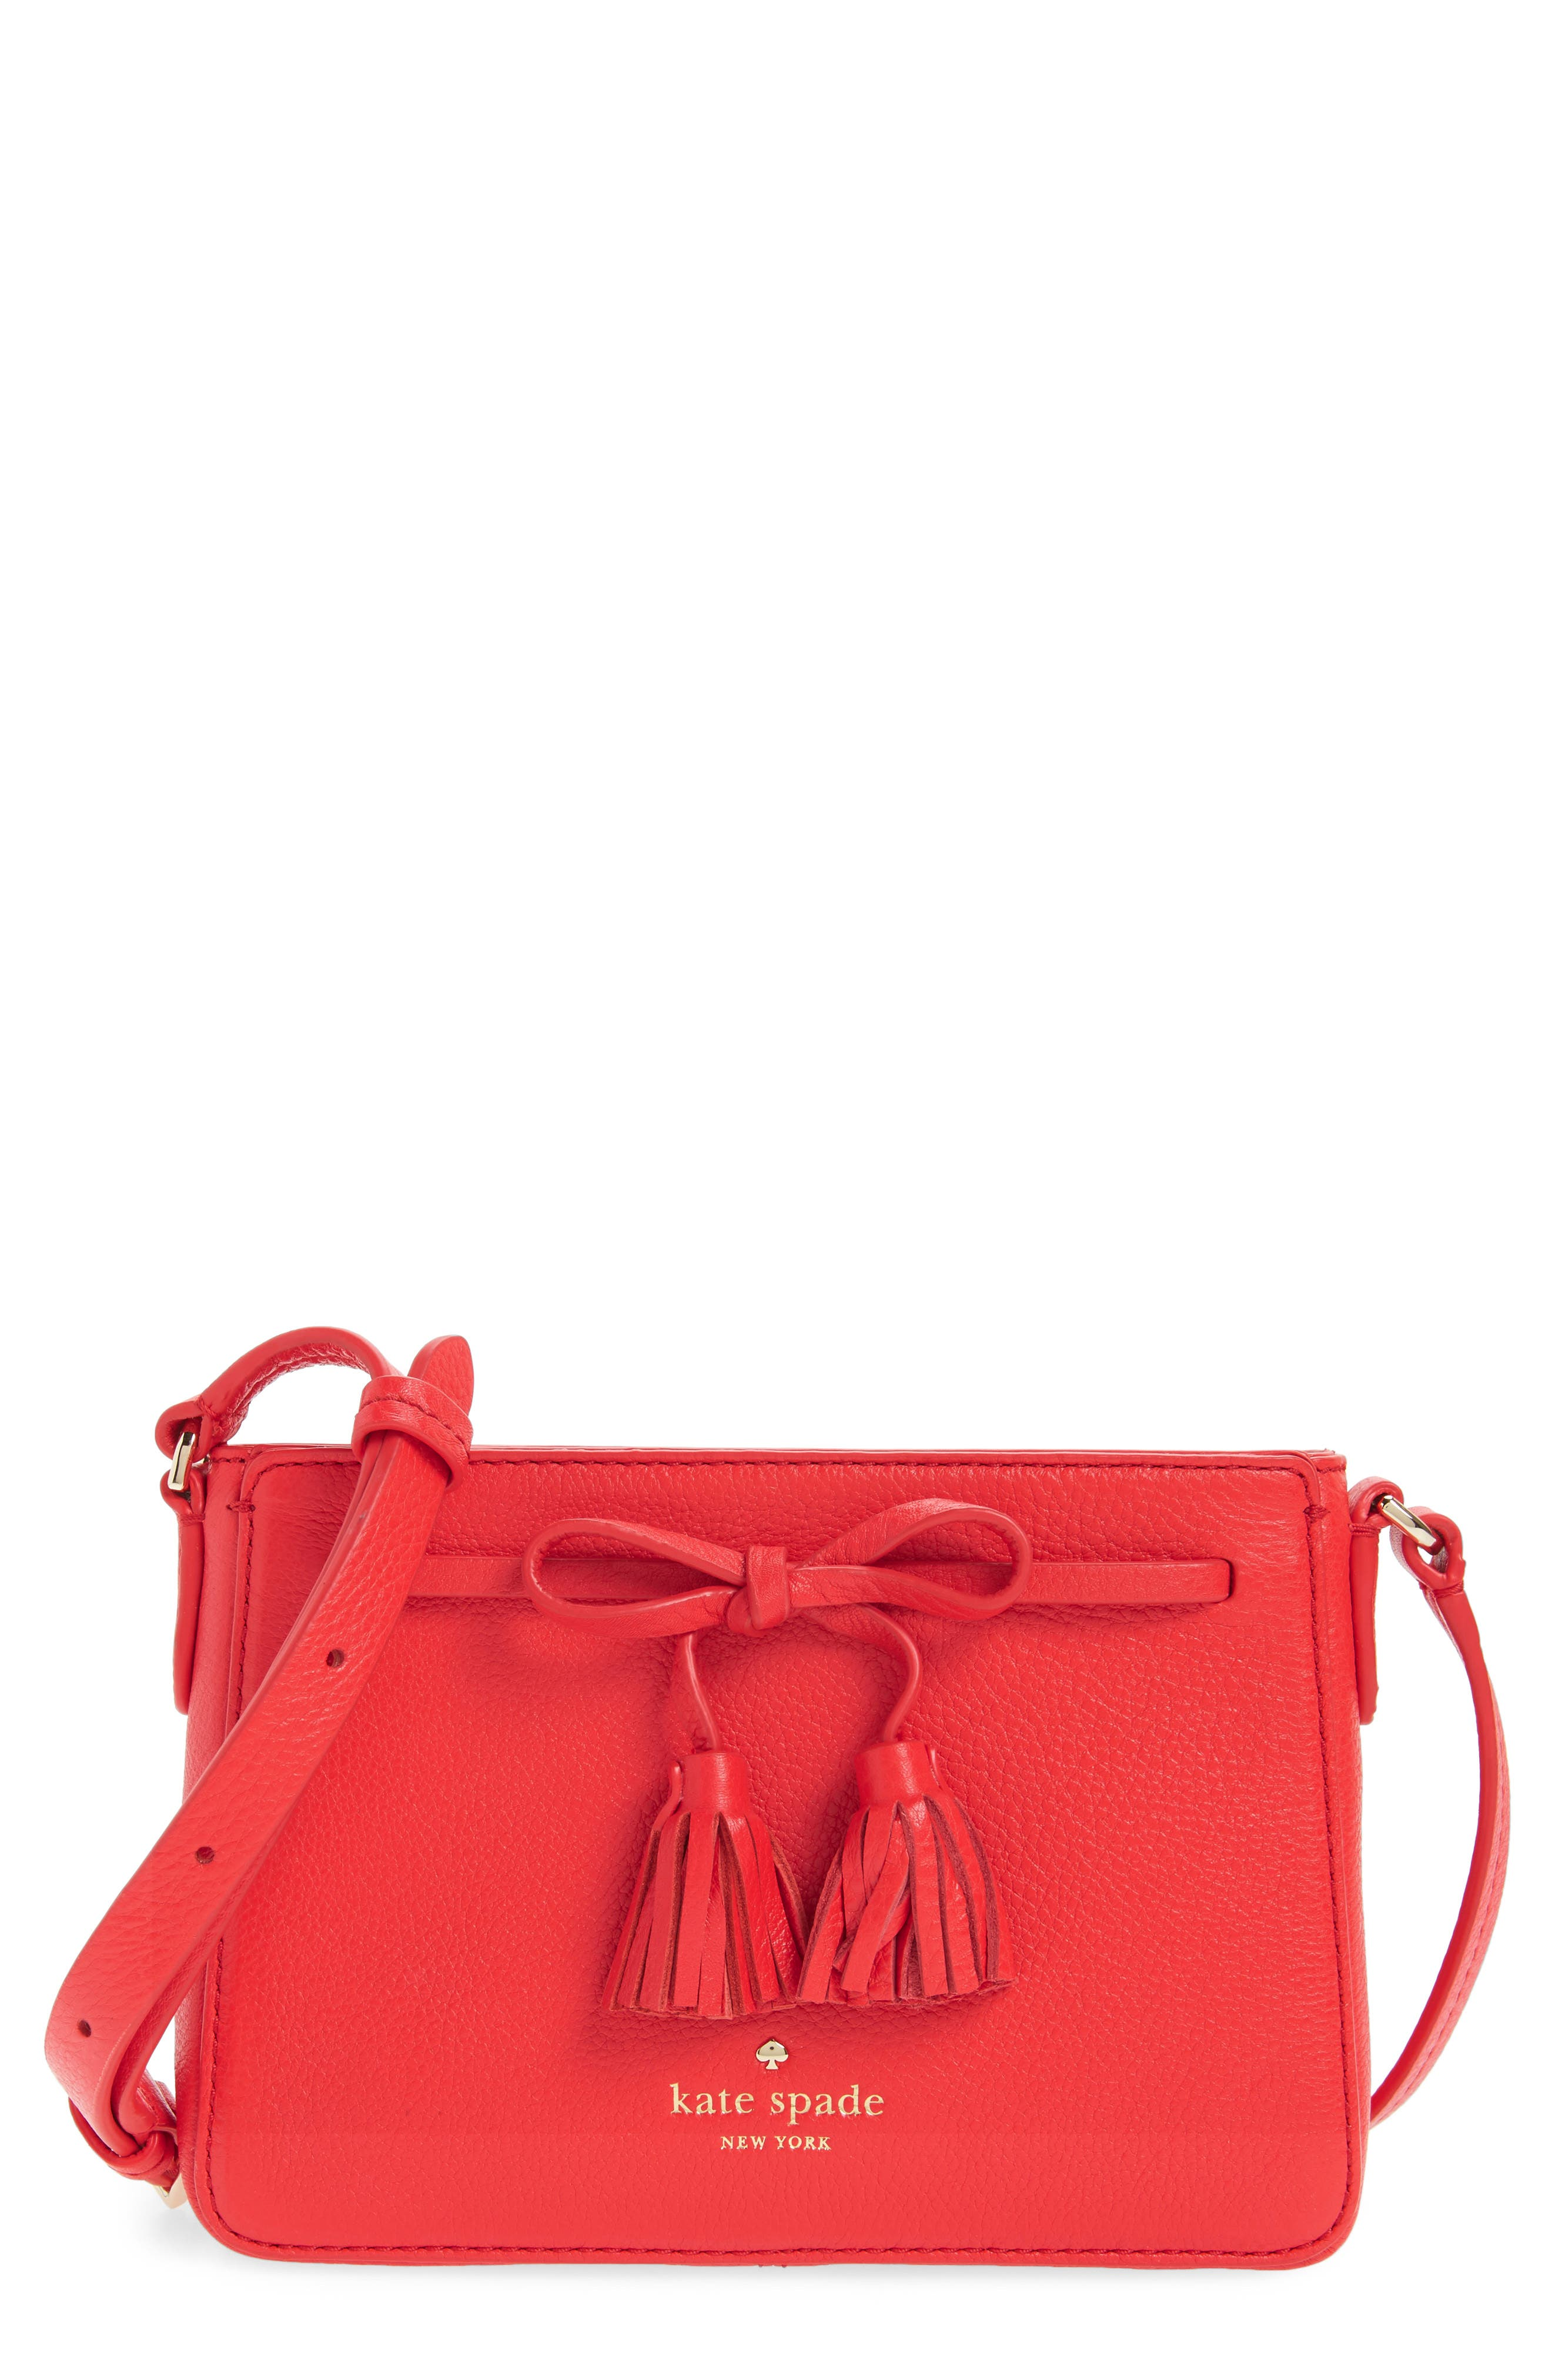 KATE SPADE NEW YORK hayes street - eniko crossbody bag